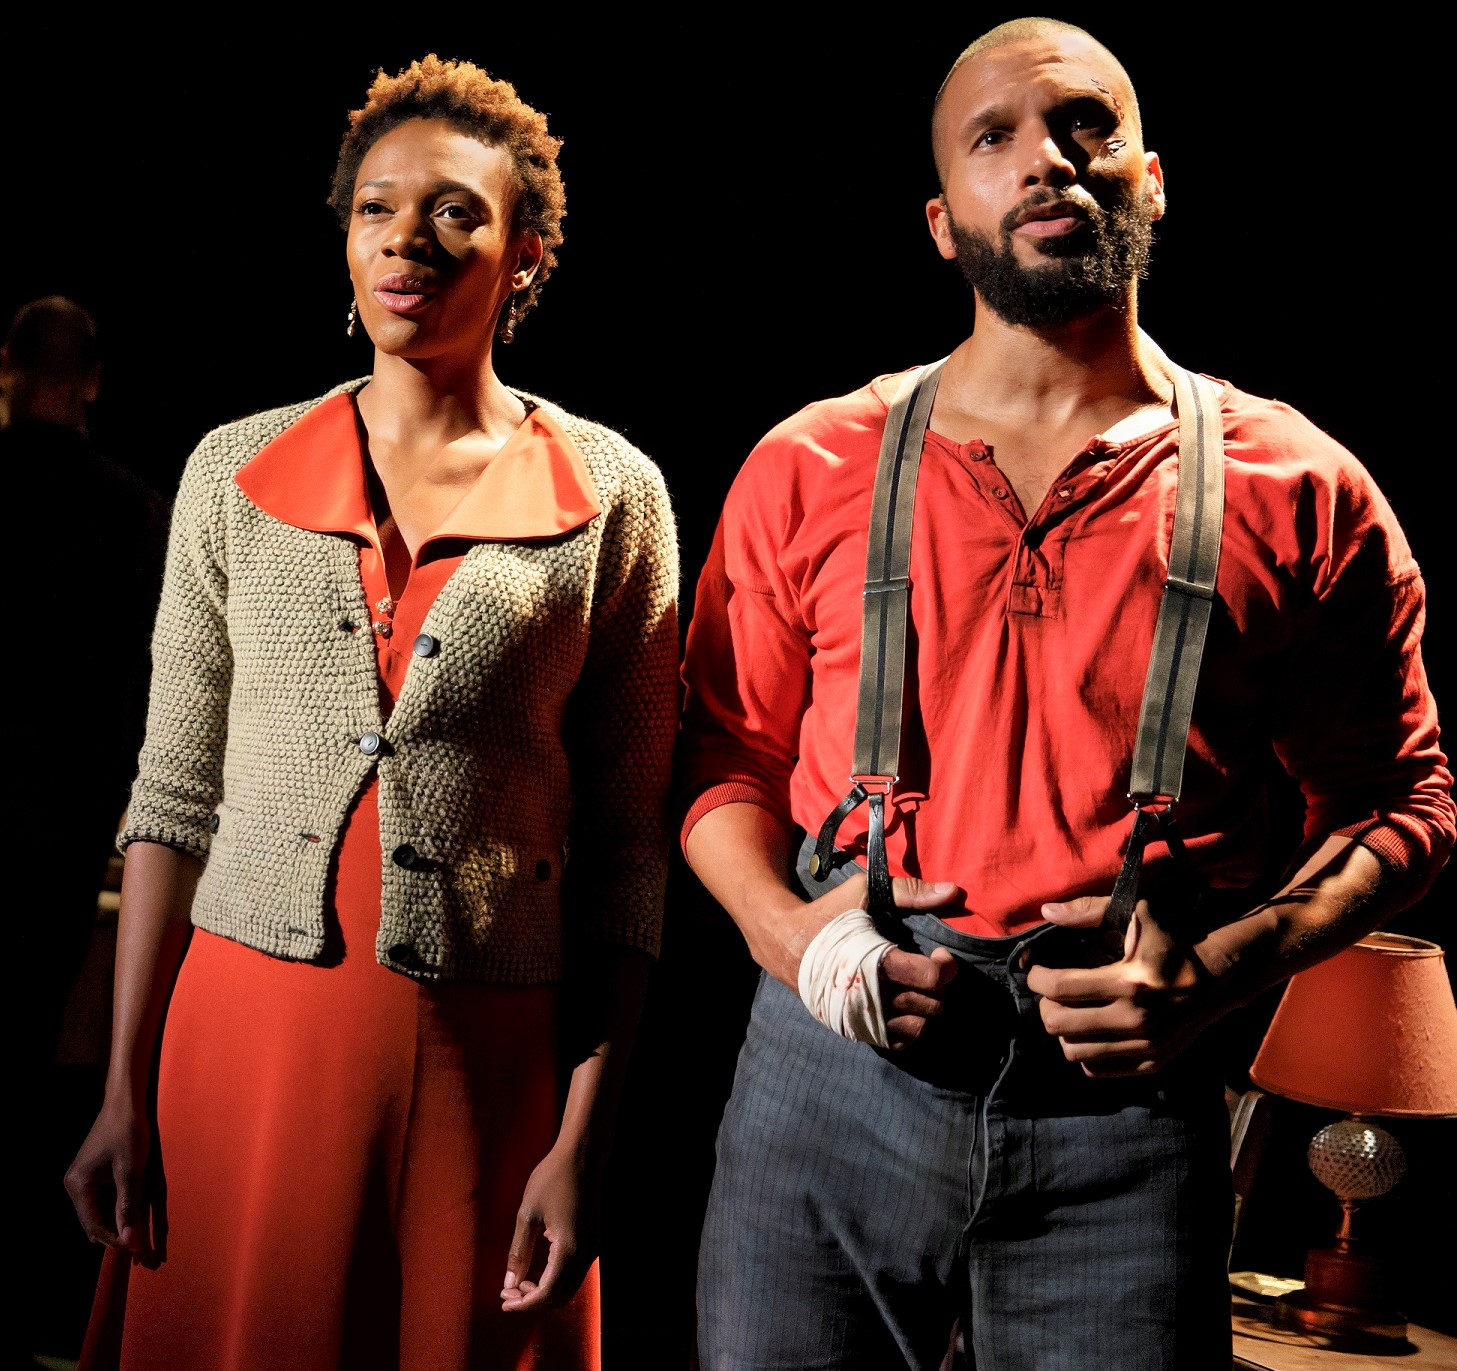 Kimber Sprawl and Sydney James Harcourt as Marianne and Joe inch toward a future together. Photographs by Joan Marcus.